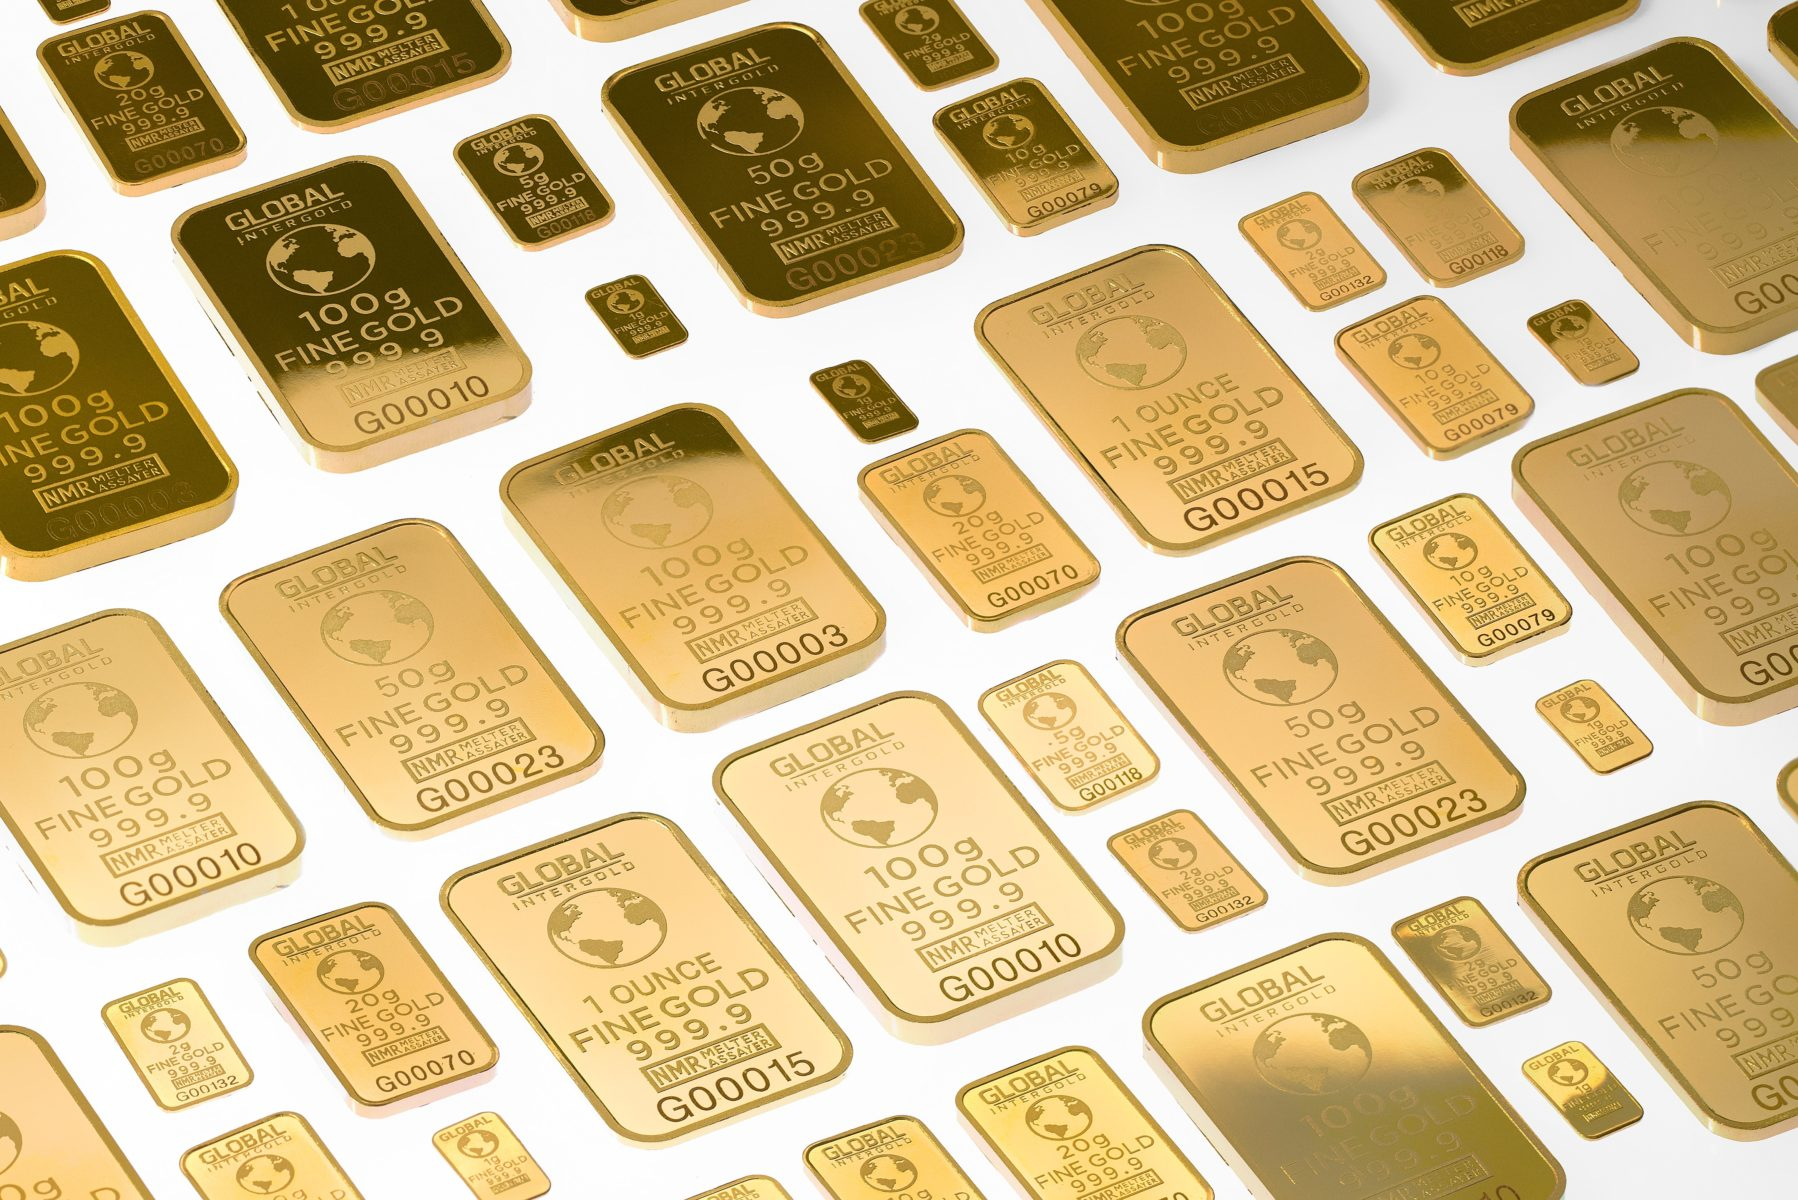 Joe Mac's Market Viewpoint: Time for Gold